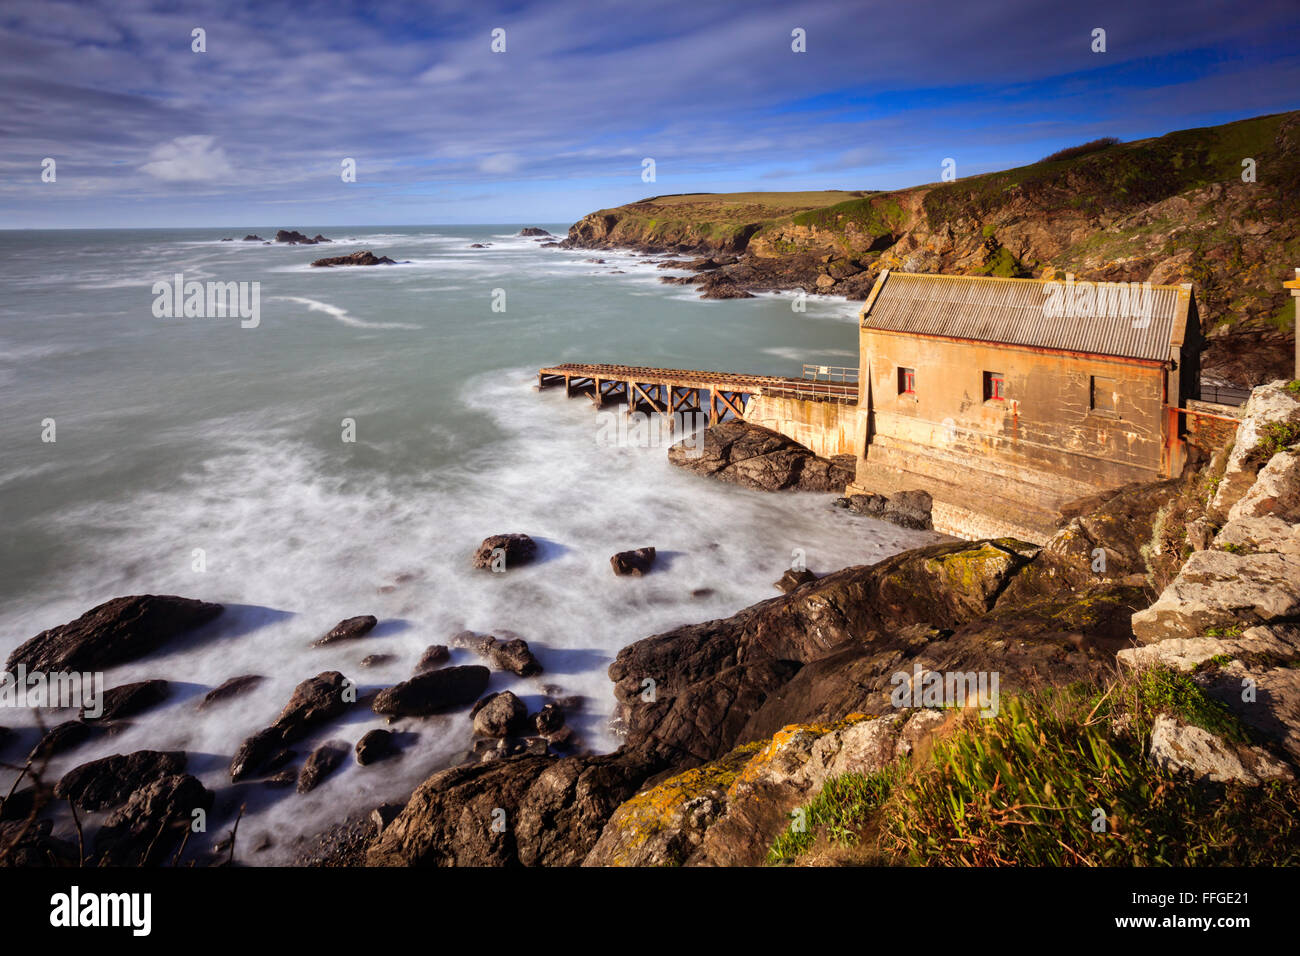 The old RNLI lifeboat station near Lizard Point in Cornwall. - Stock Image